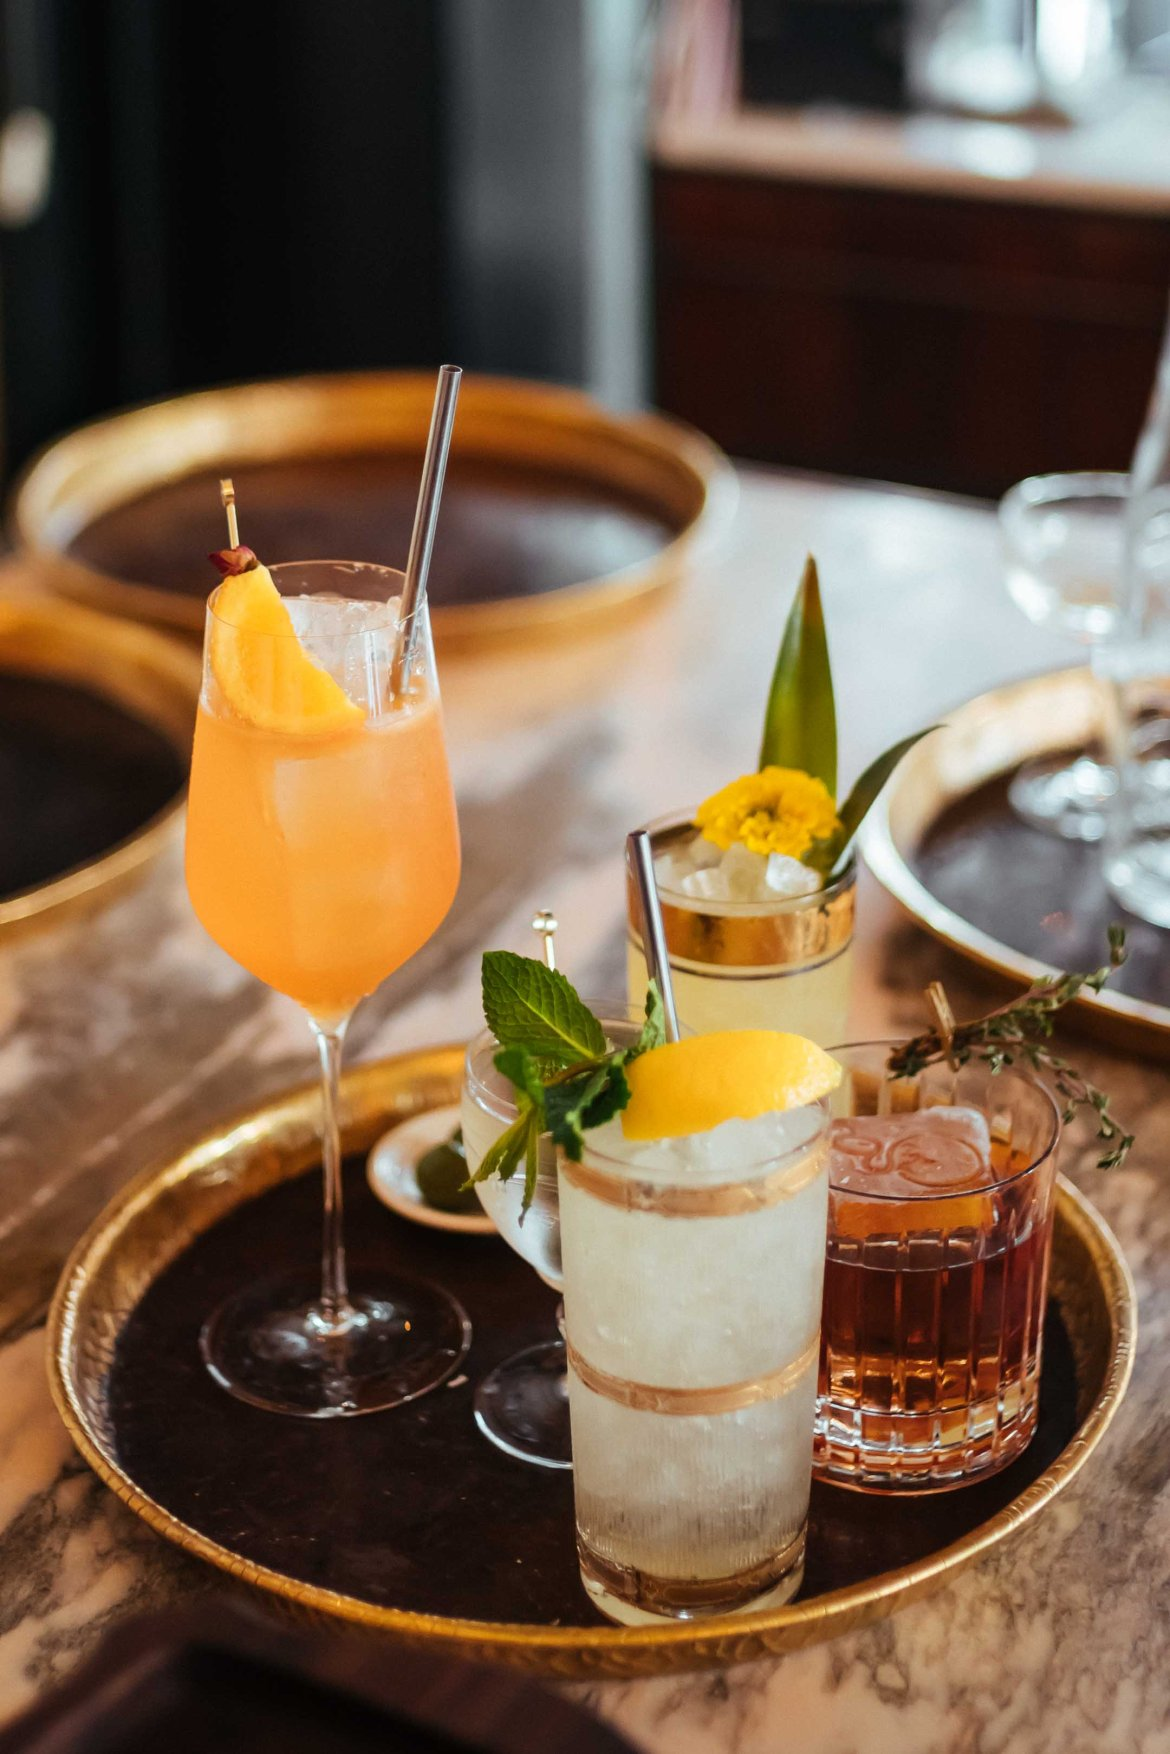 Find some of the best cocktails in Hollywood at Gwen Butcher Shop and Steakhouse Restaurant in Los Angeles, owned by Celebrity Chef Curtis Stone.